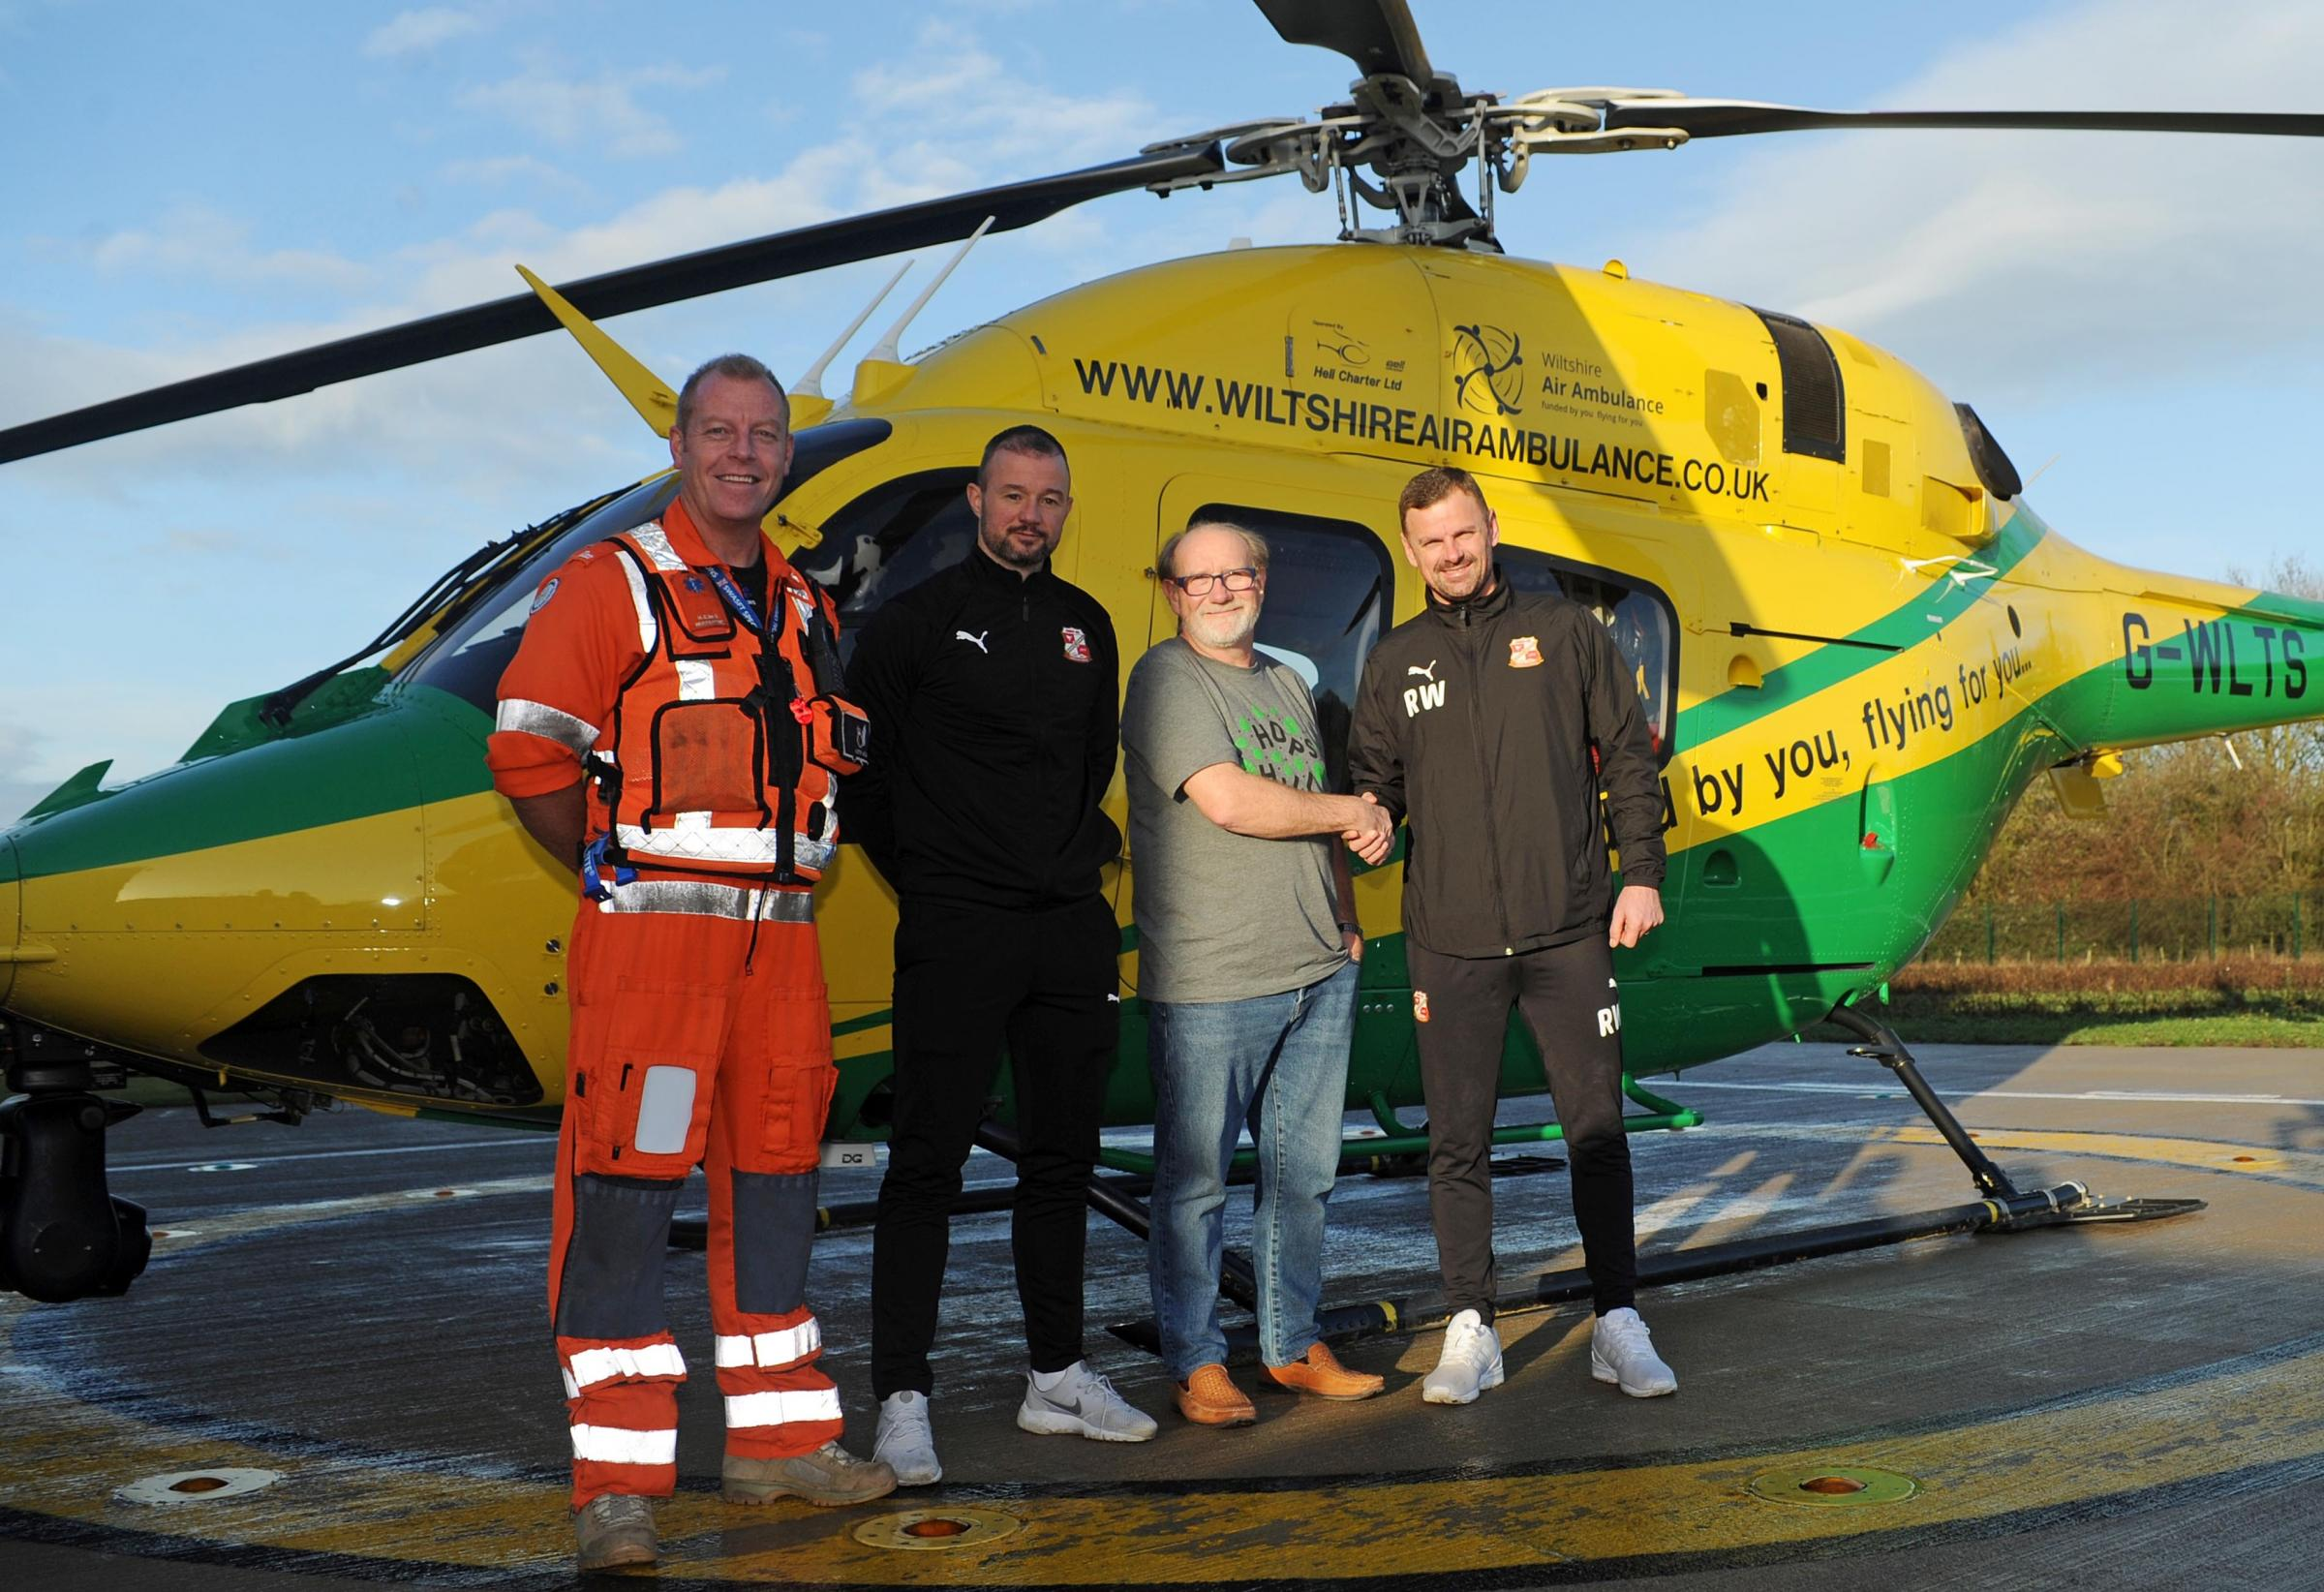 From left, Keith Mills, Wiltshire Air Ambulance paramedic, Noel Hunt, assistant manager of Swindon Town Football Club, David Philpott, Wiltshire Air Ambulance chief executive, and Richie Wellens, manager of Swindon Town Football Club, at the charity&rsquo